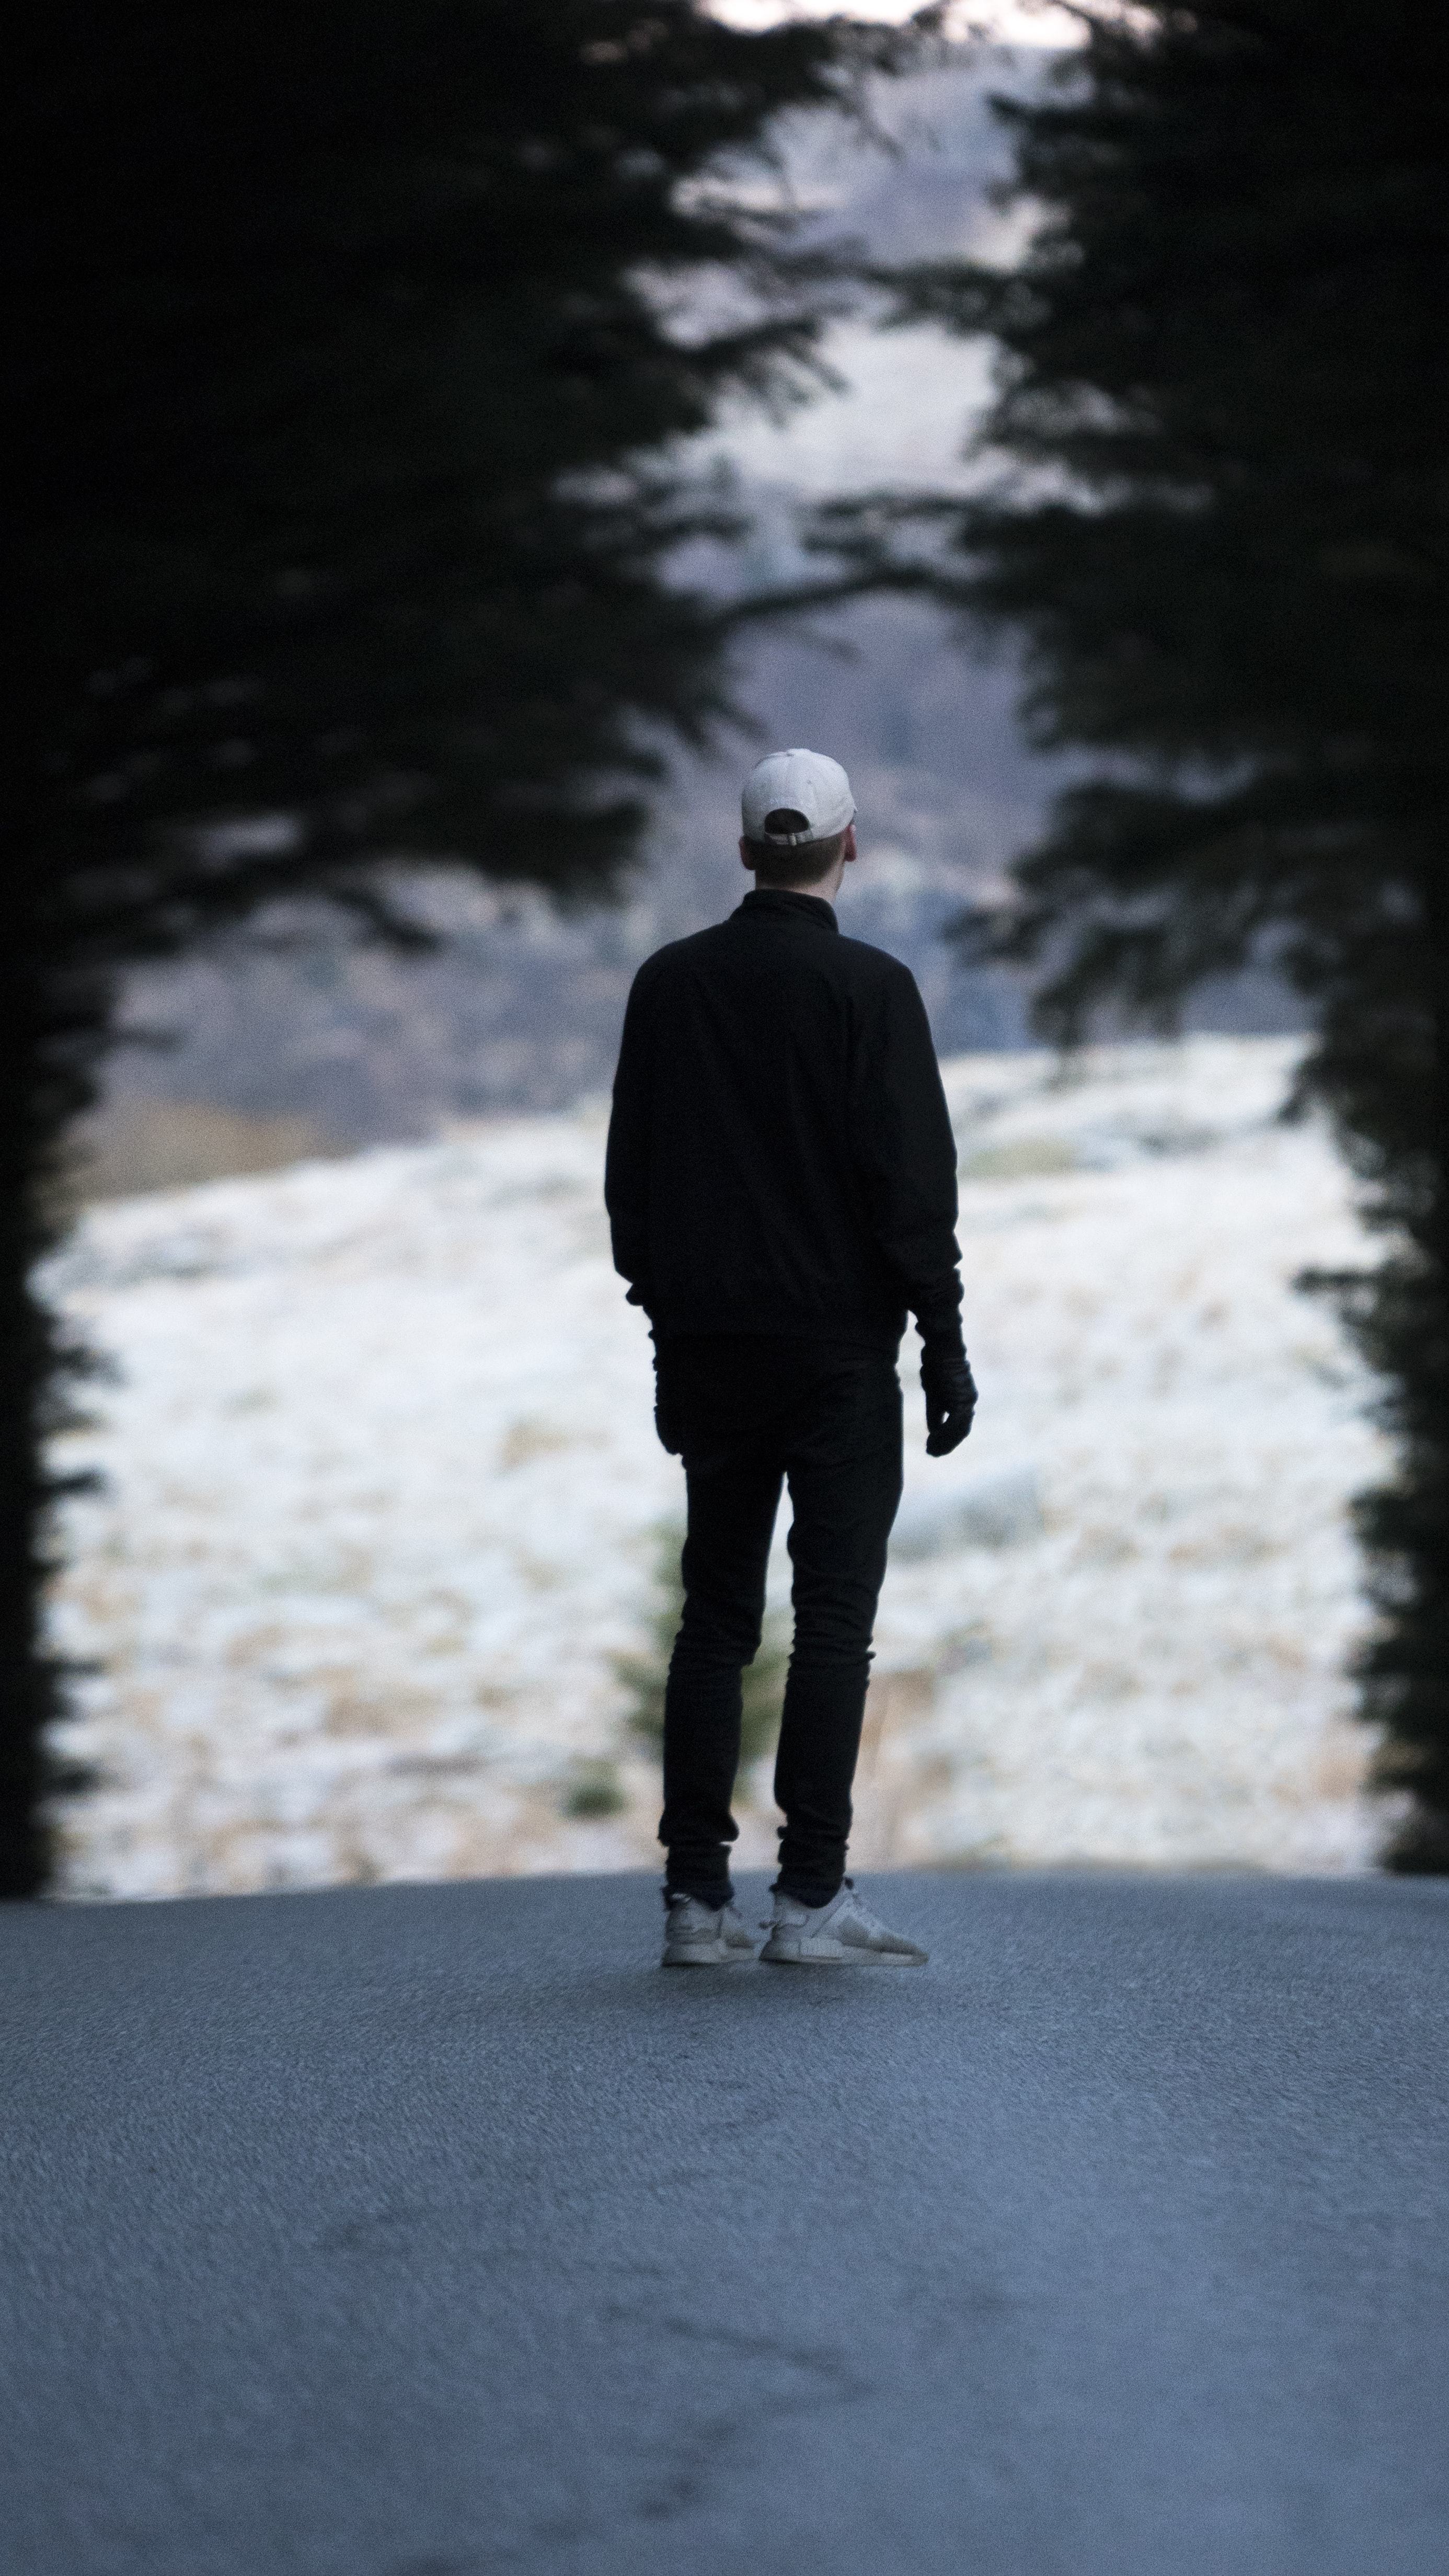 man standing on pathway with trees